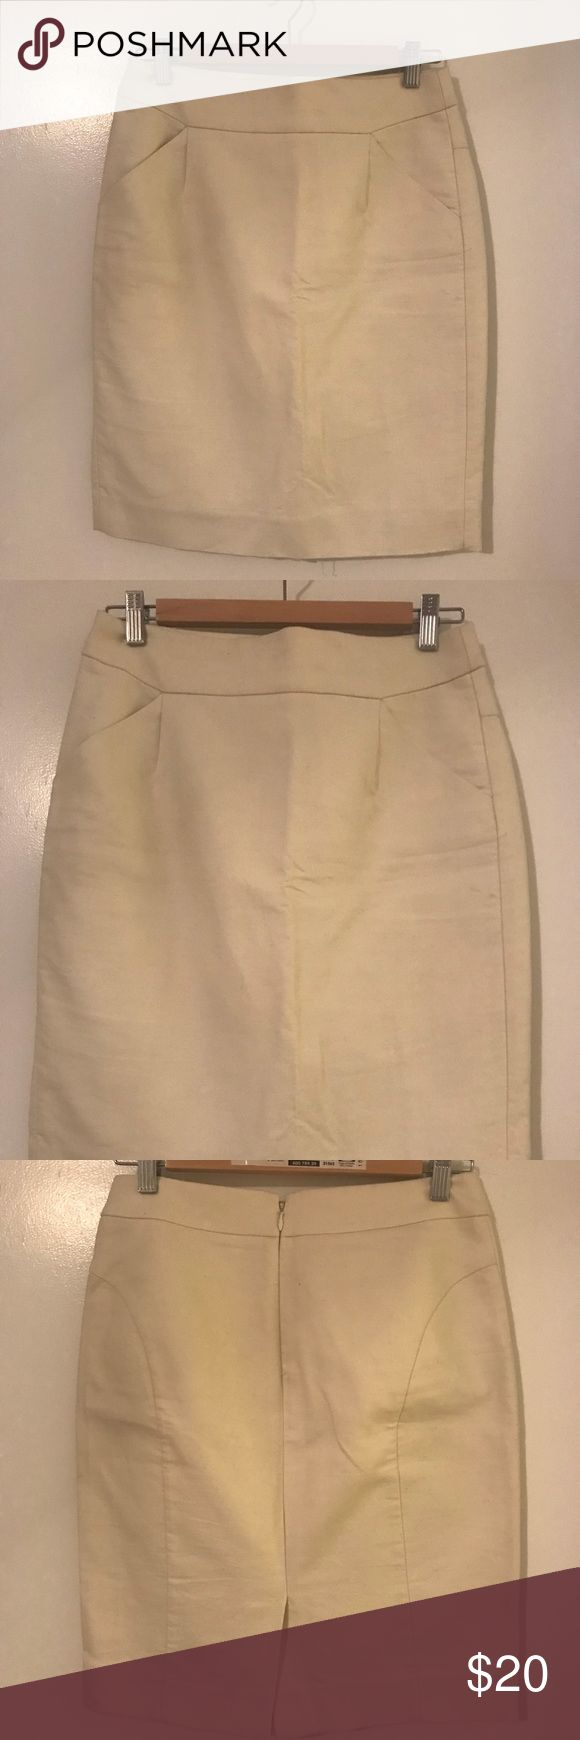 Pencil skirt (white) White Pencil skirt from JCrew (with tags). It hits right above the knee and is structured. It doesn't fit me and I never wore it, so it is in excellent condition. I wore the same one in black and other colors and always received compliments. Wish it fit!! Lol. J. Crew Skirts Pencil